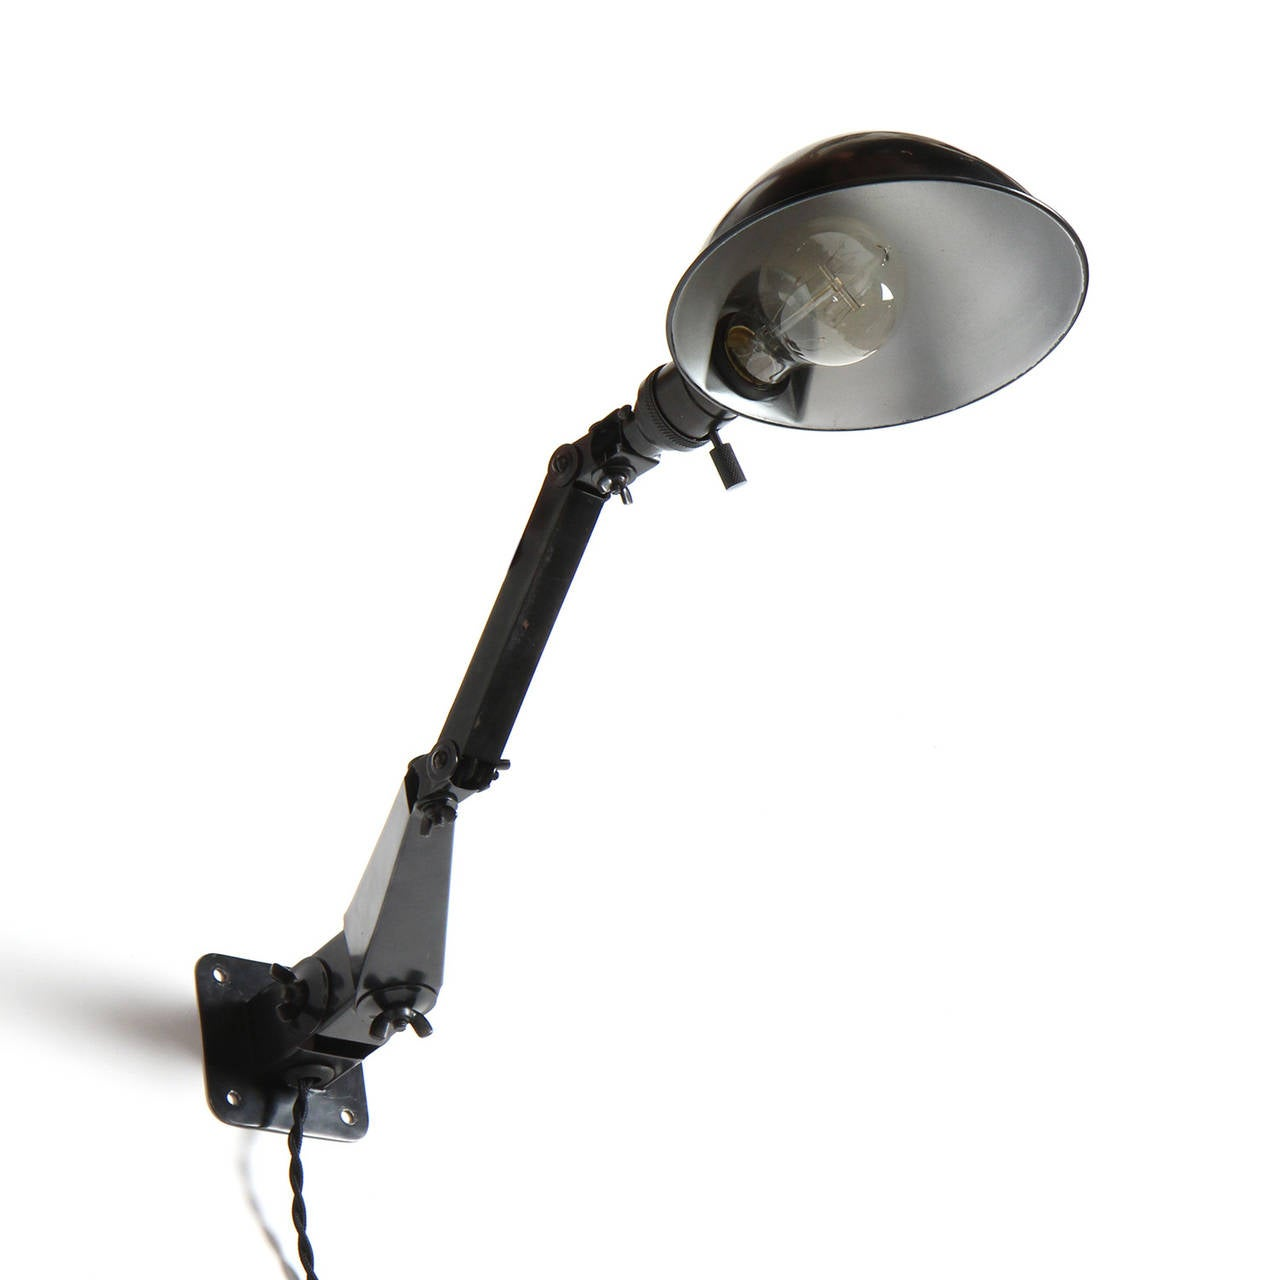 Wall Mounted Articulated Lamp : Industrial Articulated Wall Lamps For Sale at 1stdibs